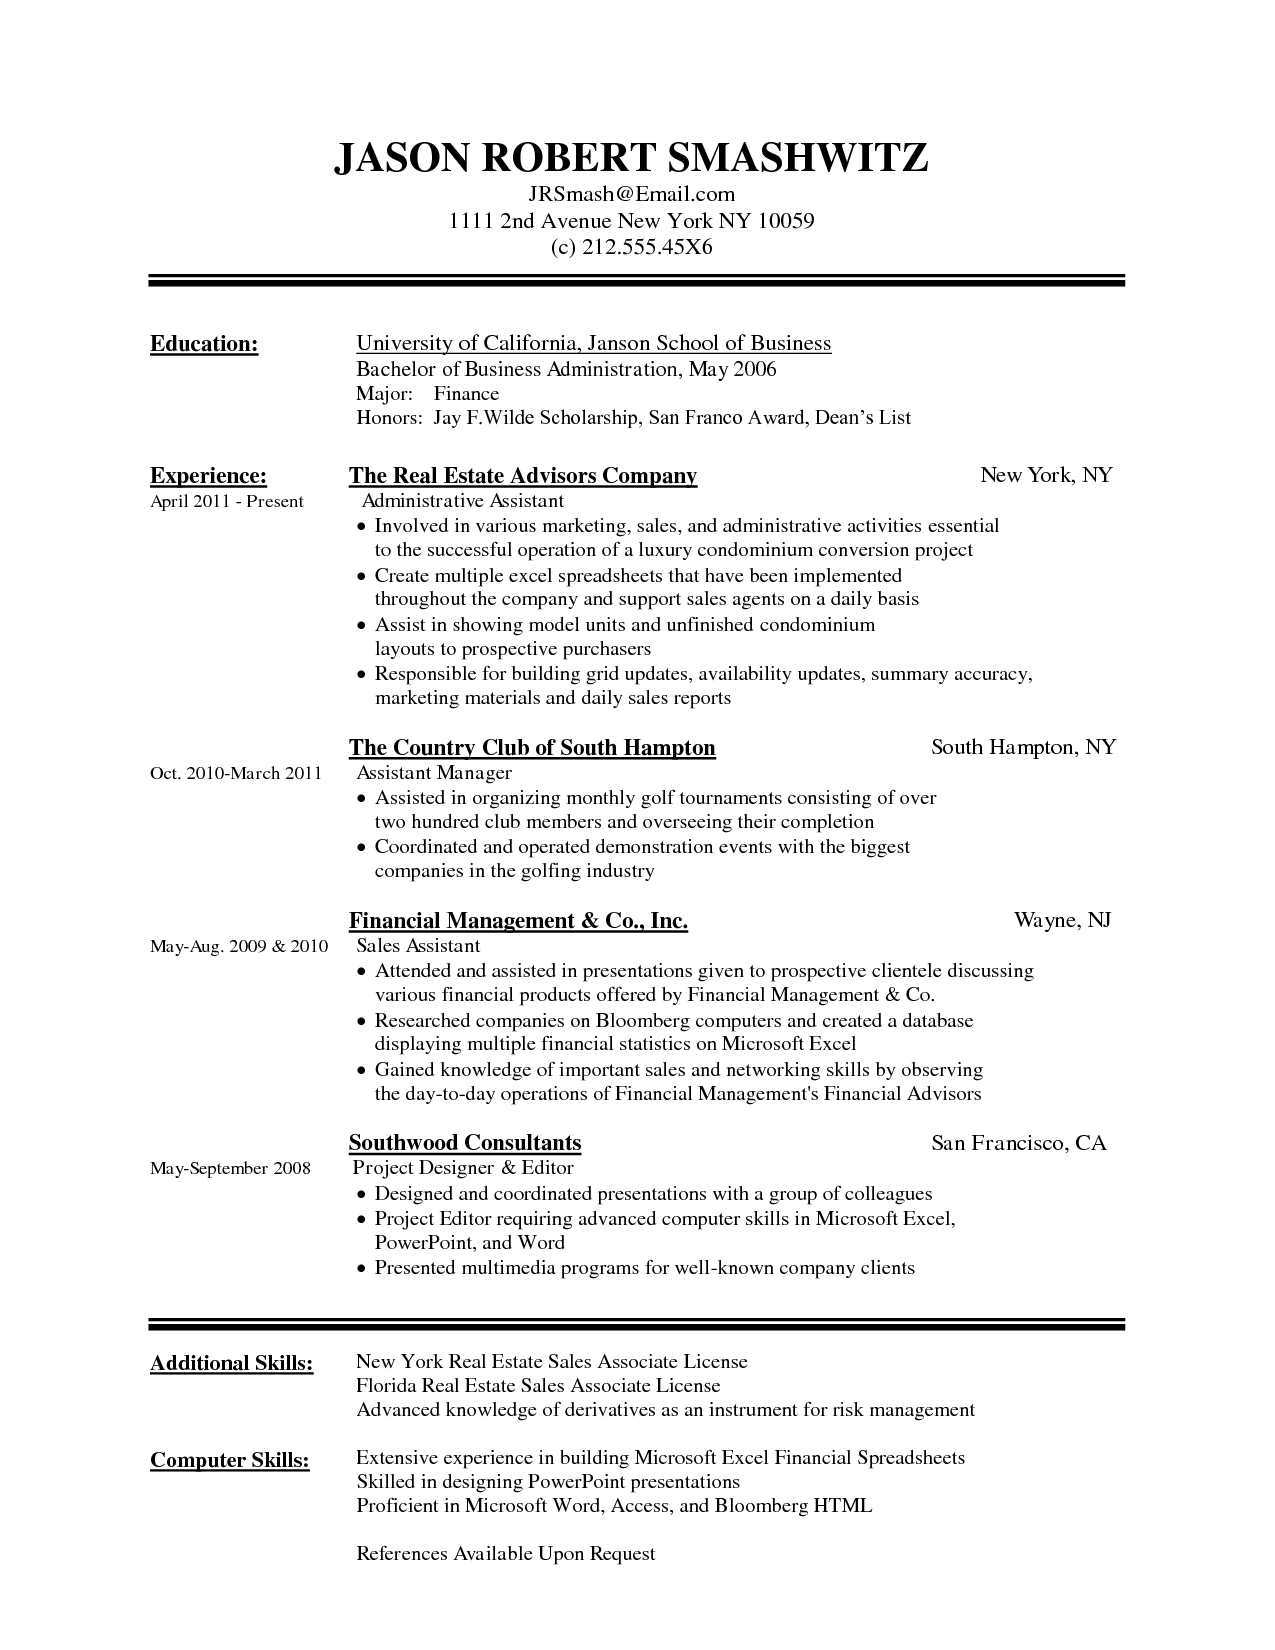 free resume templates microsoft word functional resume cv traditional design word template resume templates word fotolipcom - Free Template Resume Microsoft Word